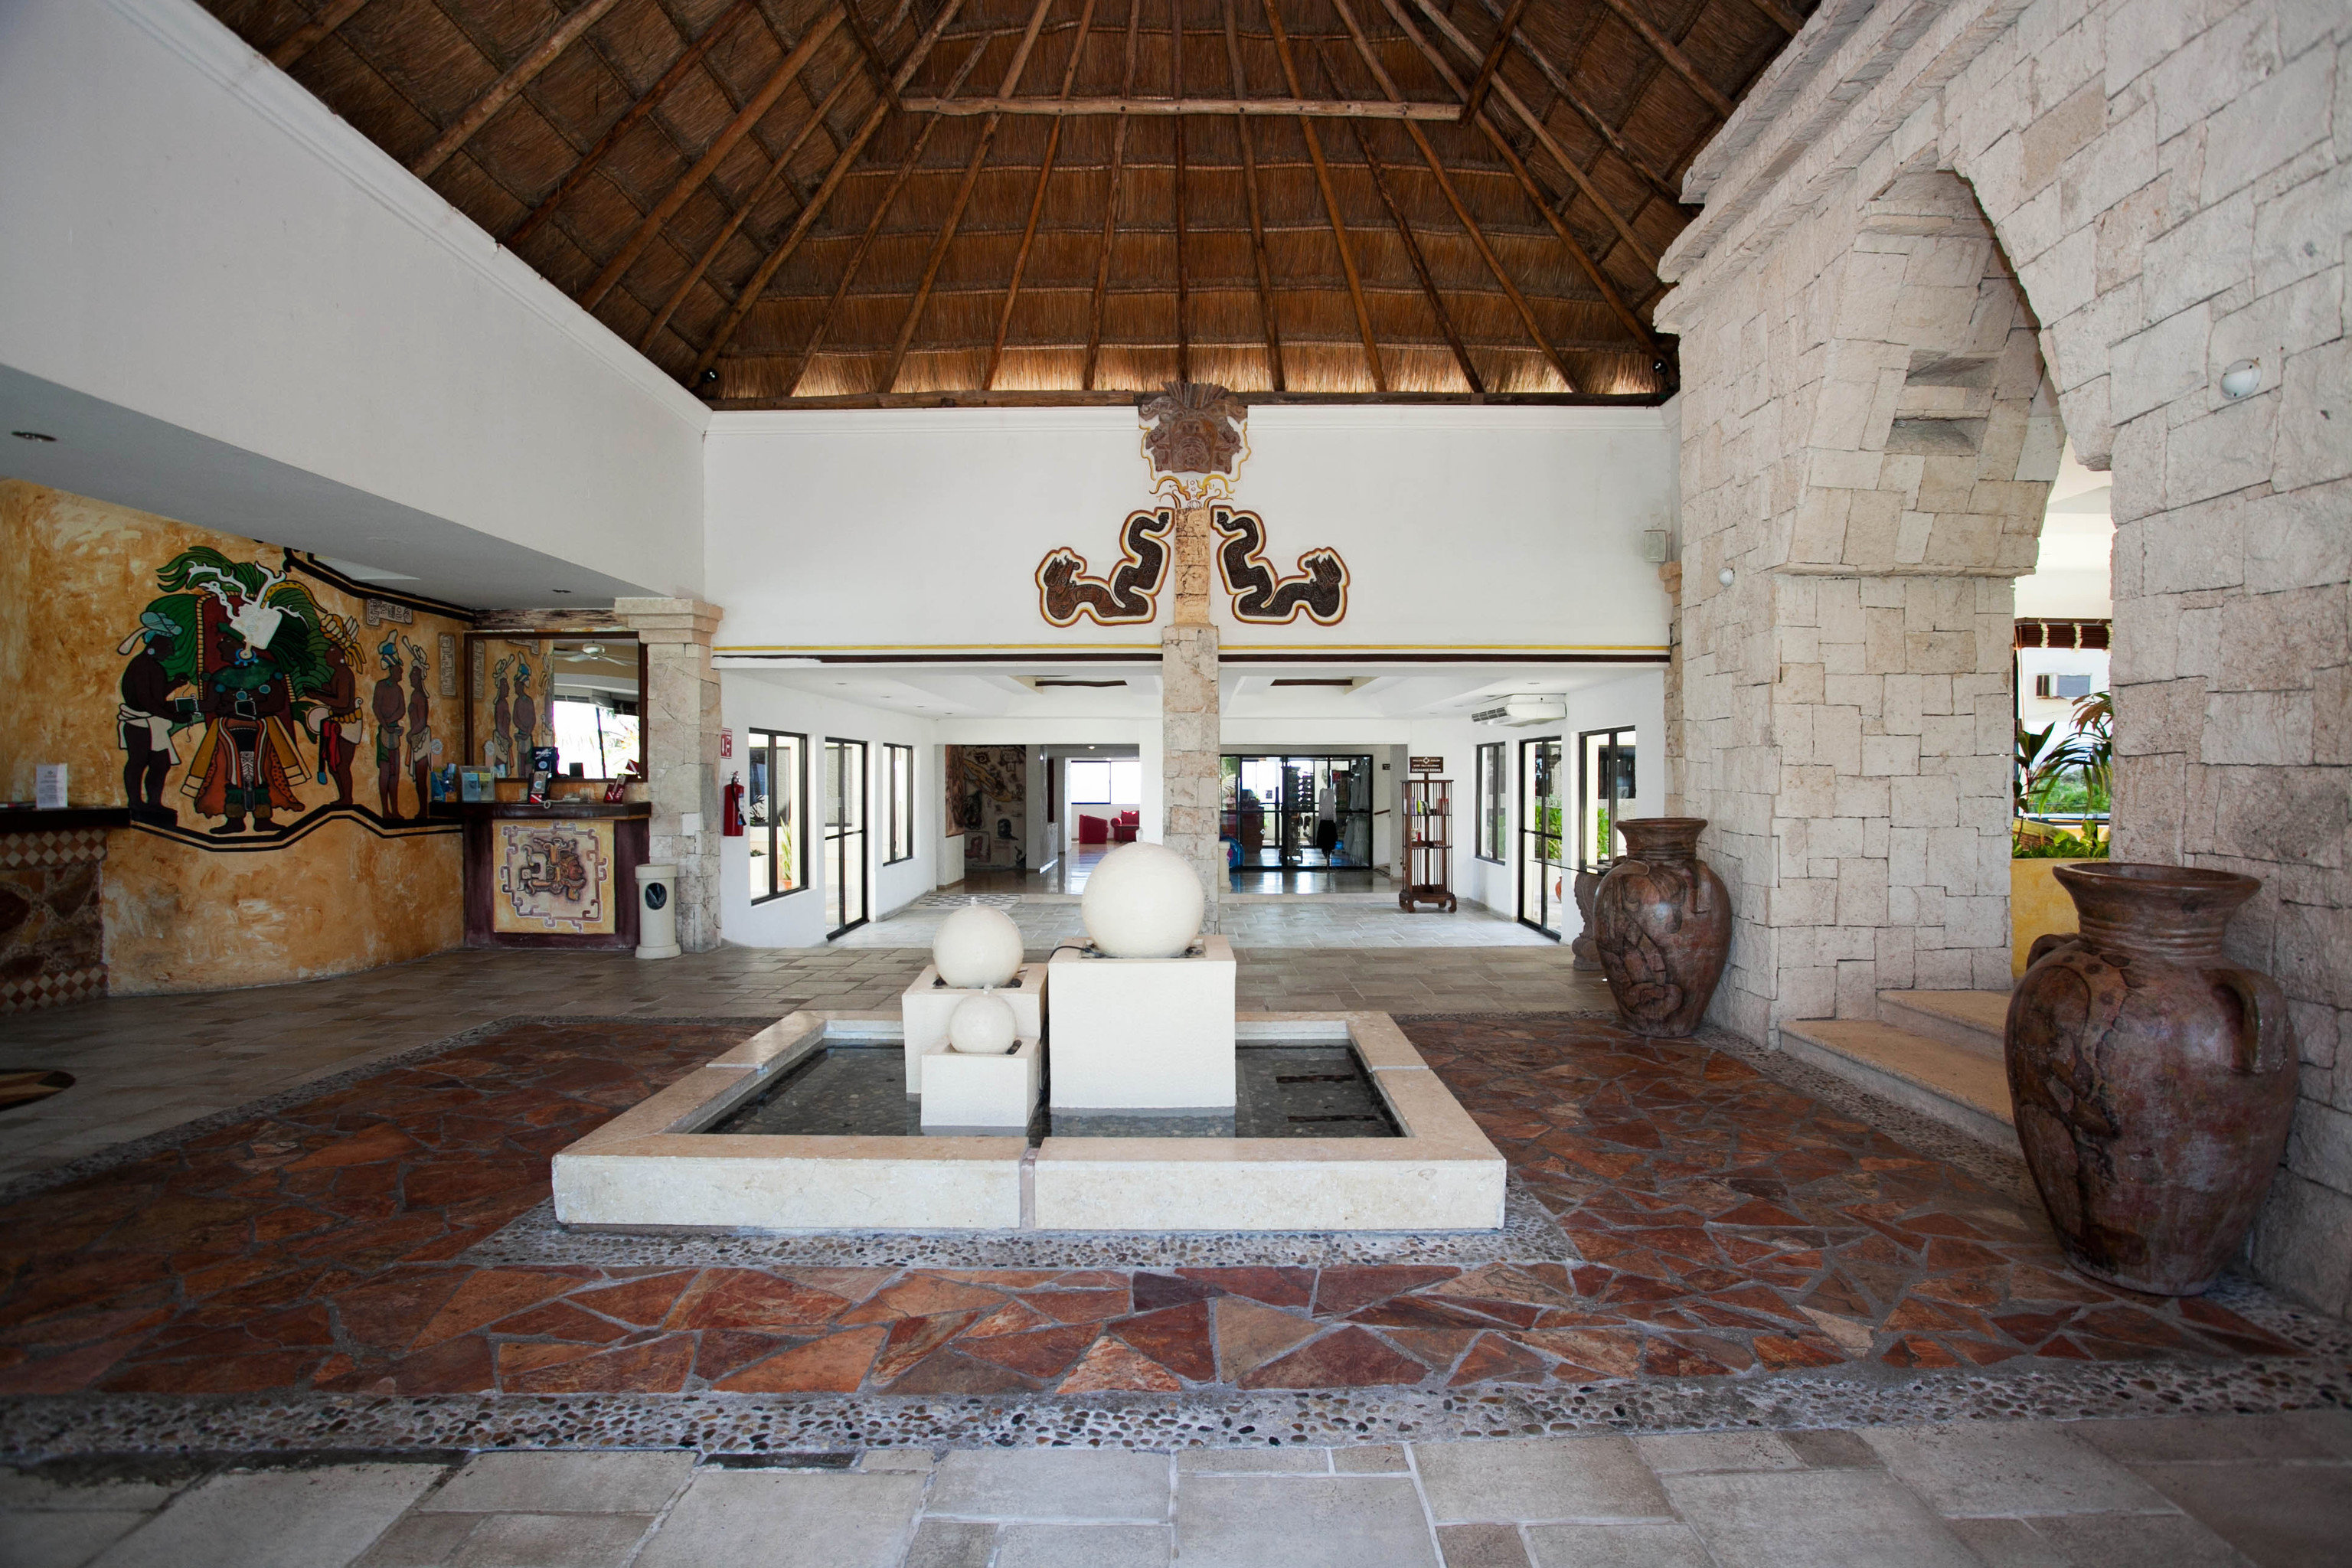 property home hacienda mansion Lobby living room Villa tourist attraction Courtyard flooring farmhouse cottage stone